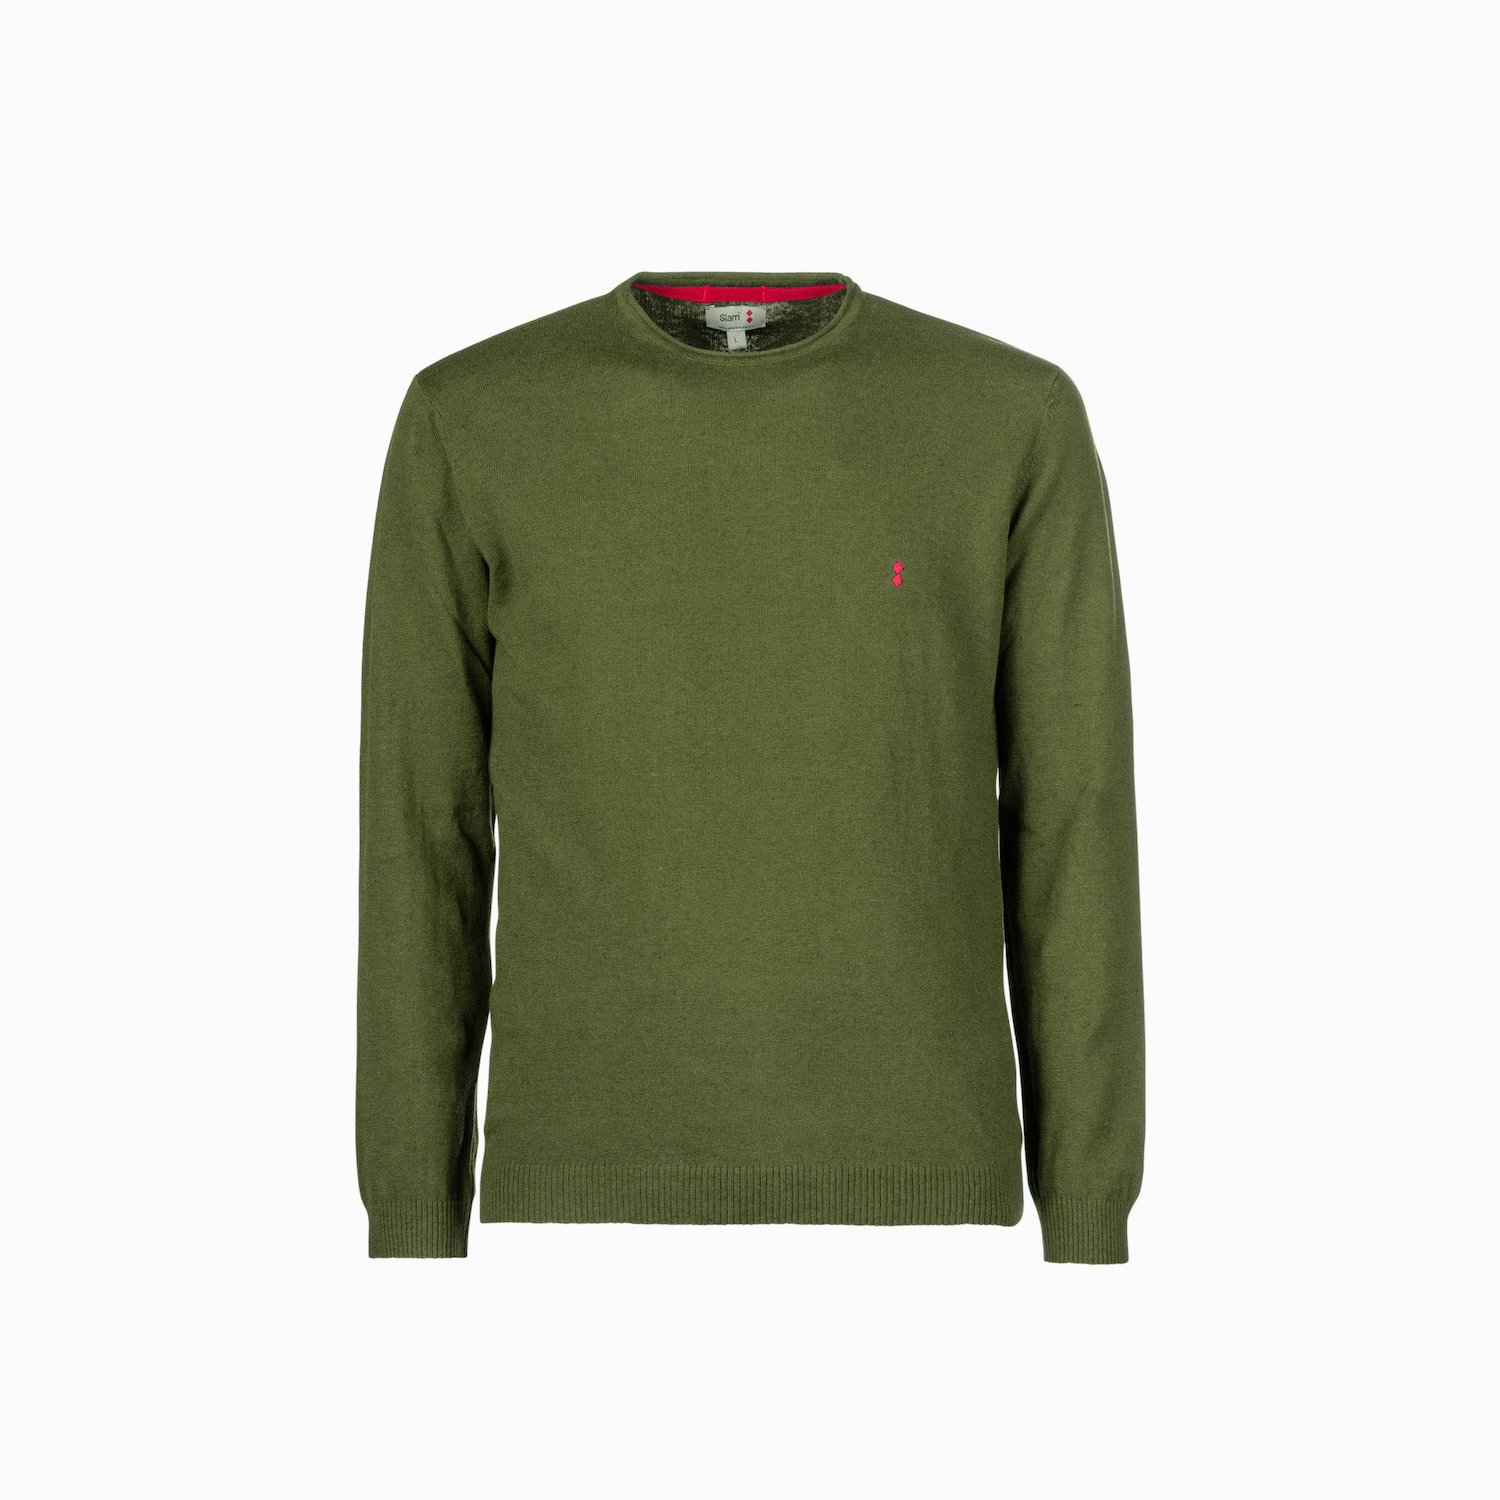 C244 Jumper - Army